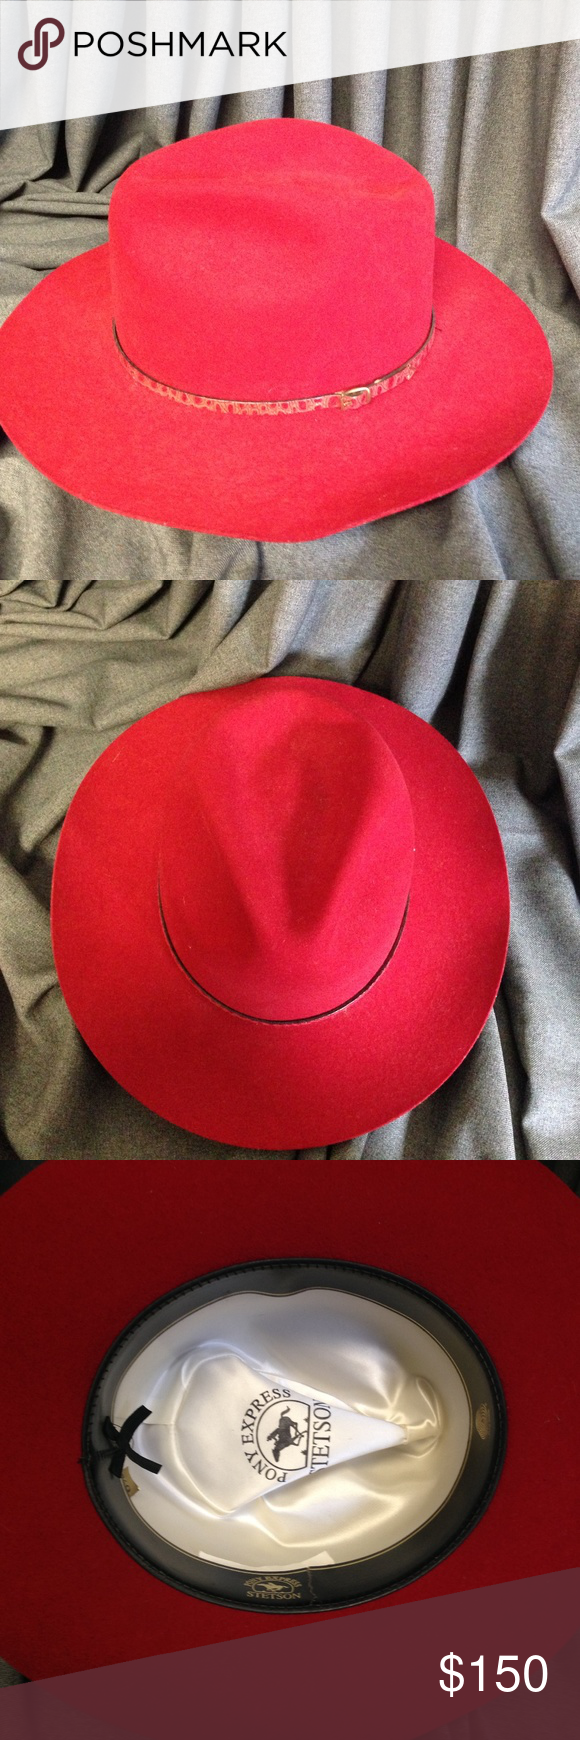 Stetson Pony Express Cindy Red Cowgirl-Cowboy Hat Stetson Pony Express  Cindy Red Cowgirl- f758c6f3f9e